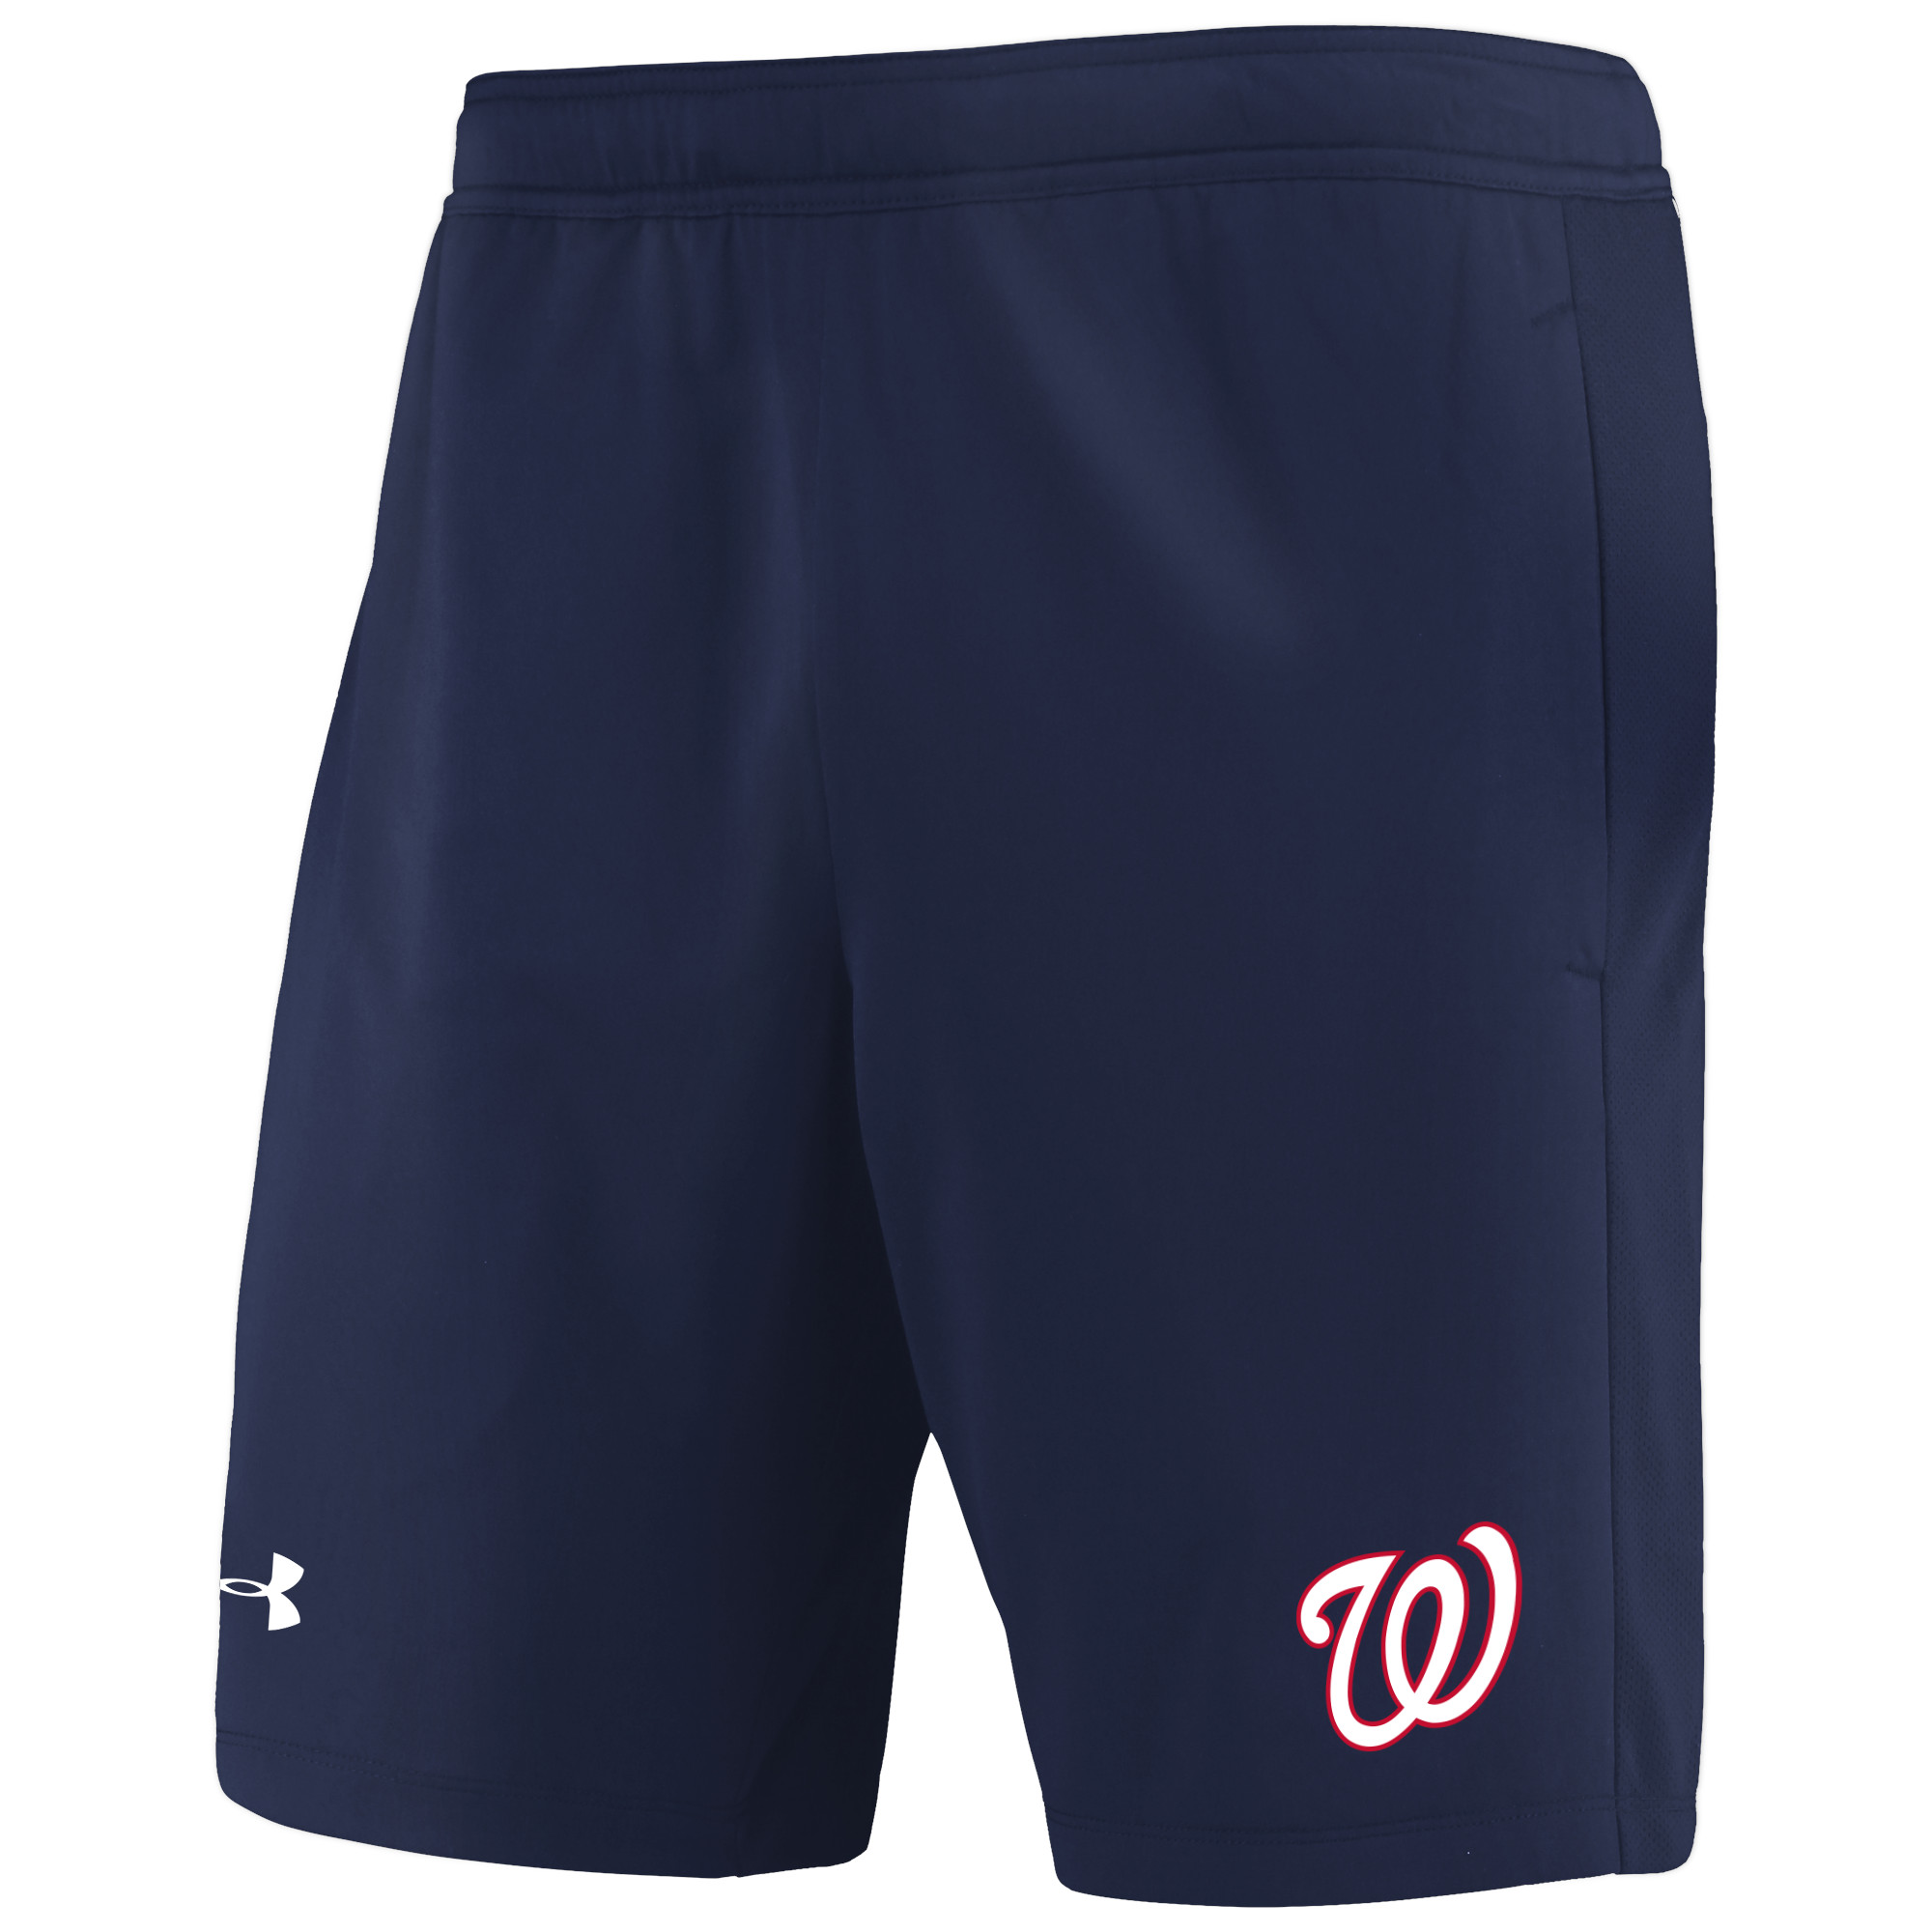 Washington Nationals Under Armour MK-1 Performance Shorts - Navy